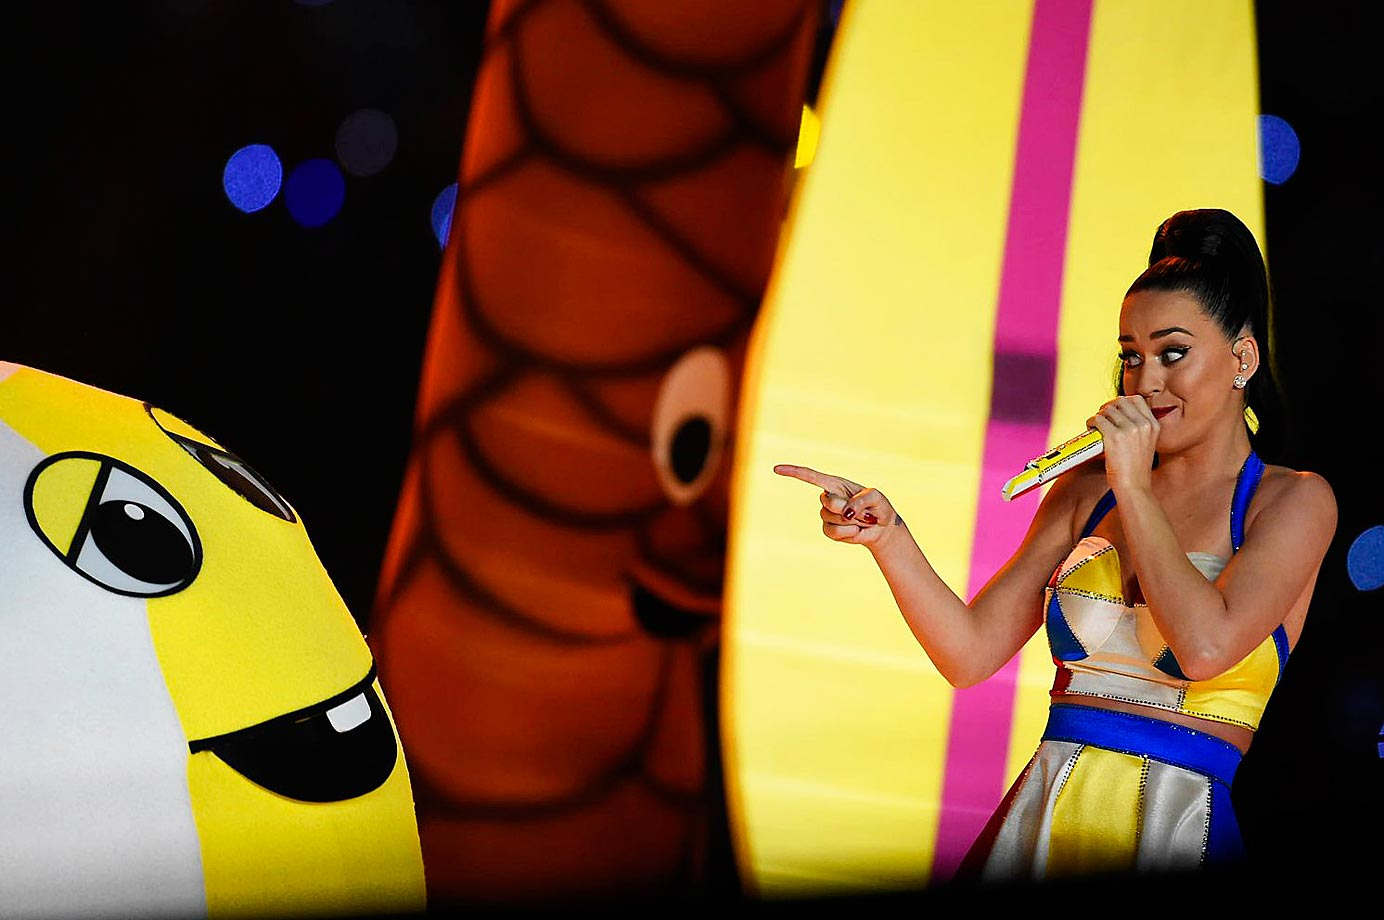 Katy Perry performs at the half time show at Super Bowl XLIX.